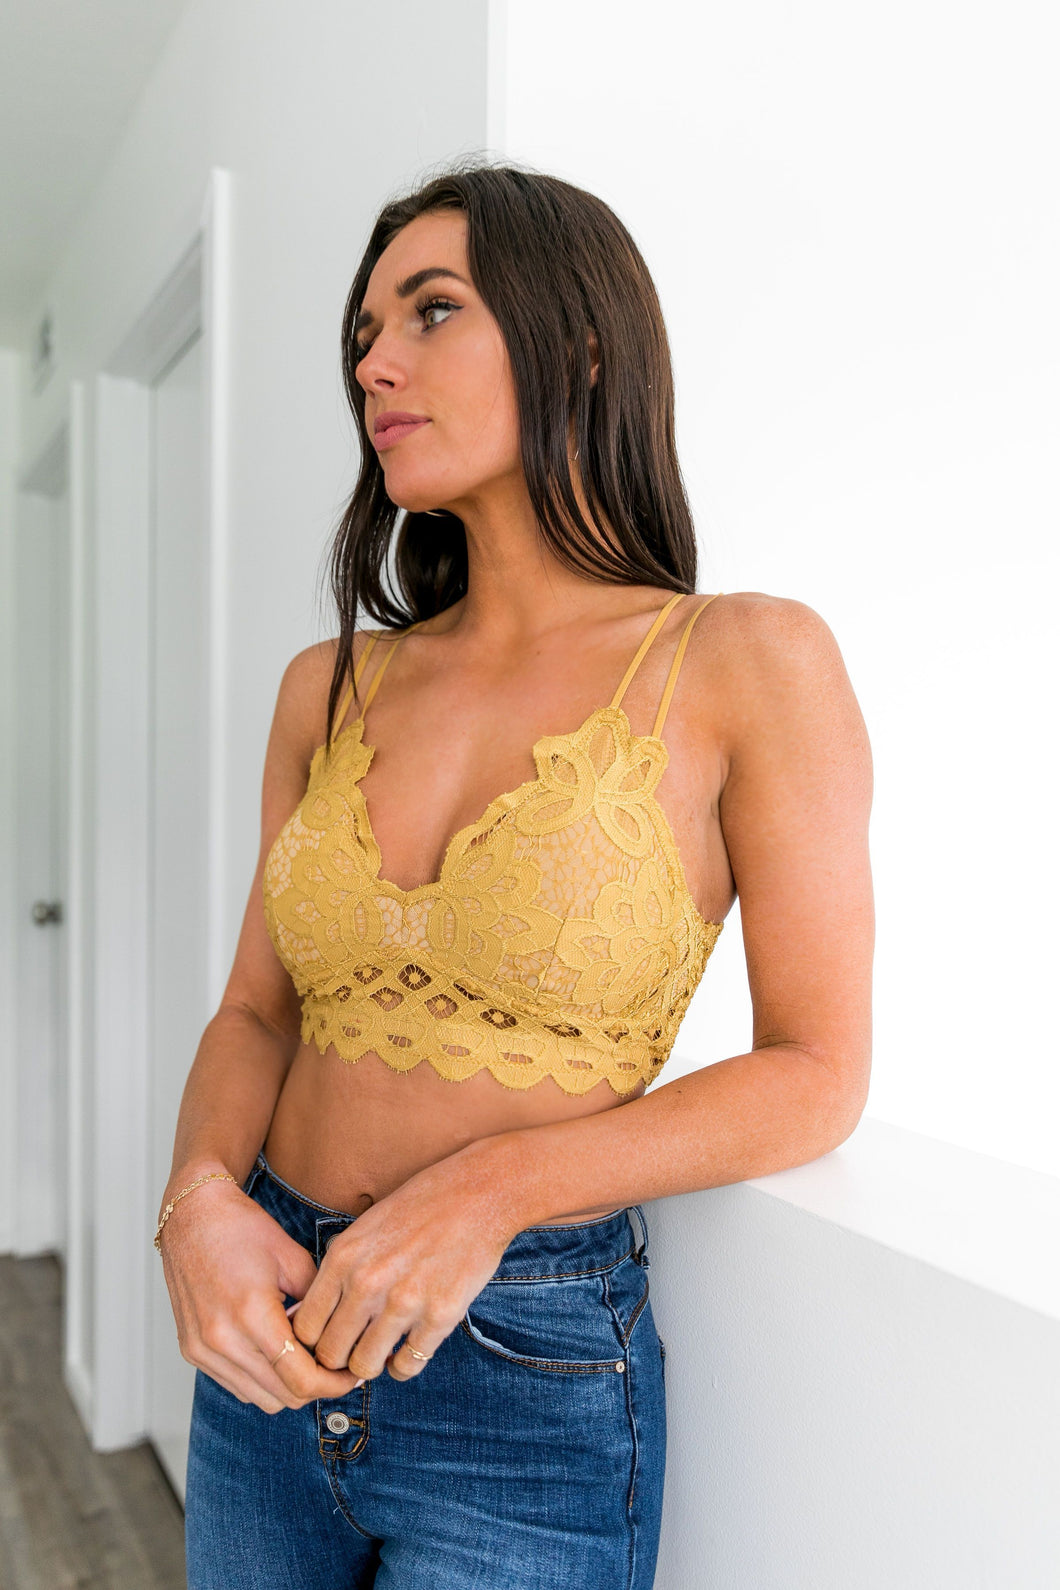 XOXO Scalloped Lace Bralette In Honey - Boho Valley Boutique